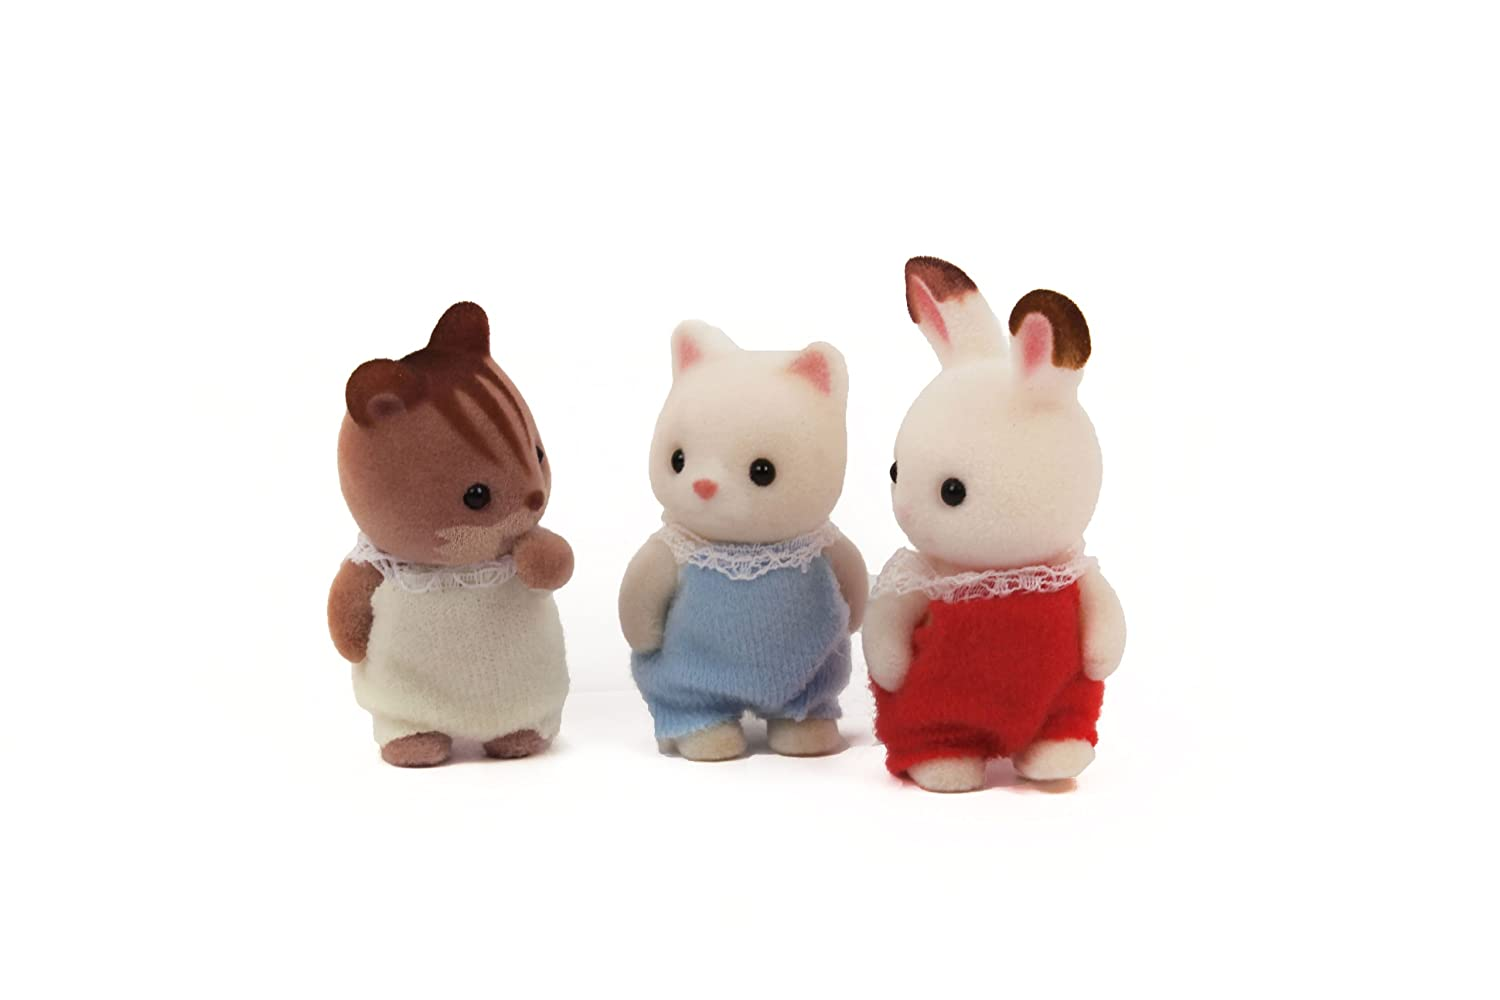 Calico Critters CC1482 Baby Friends Image 3